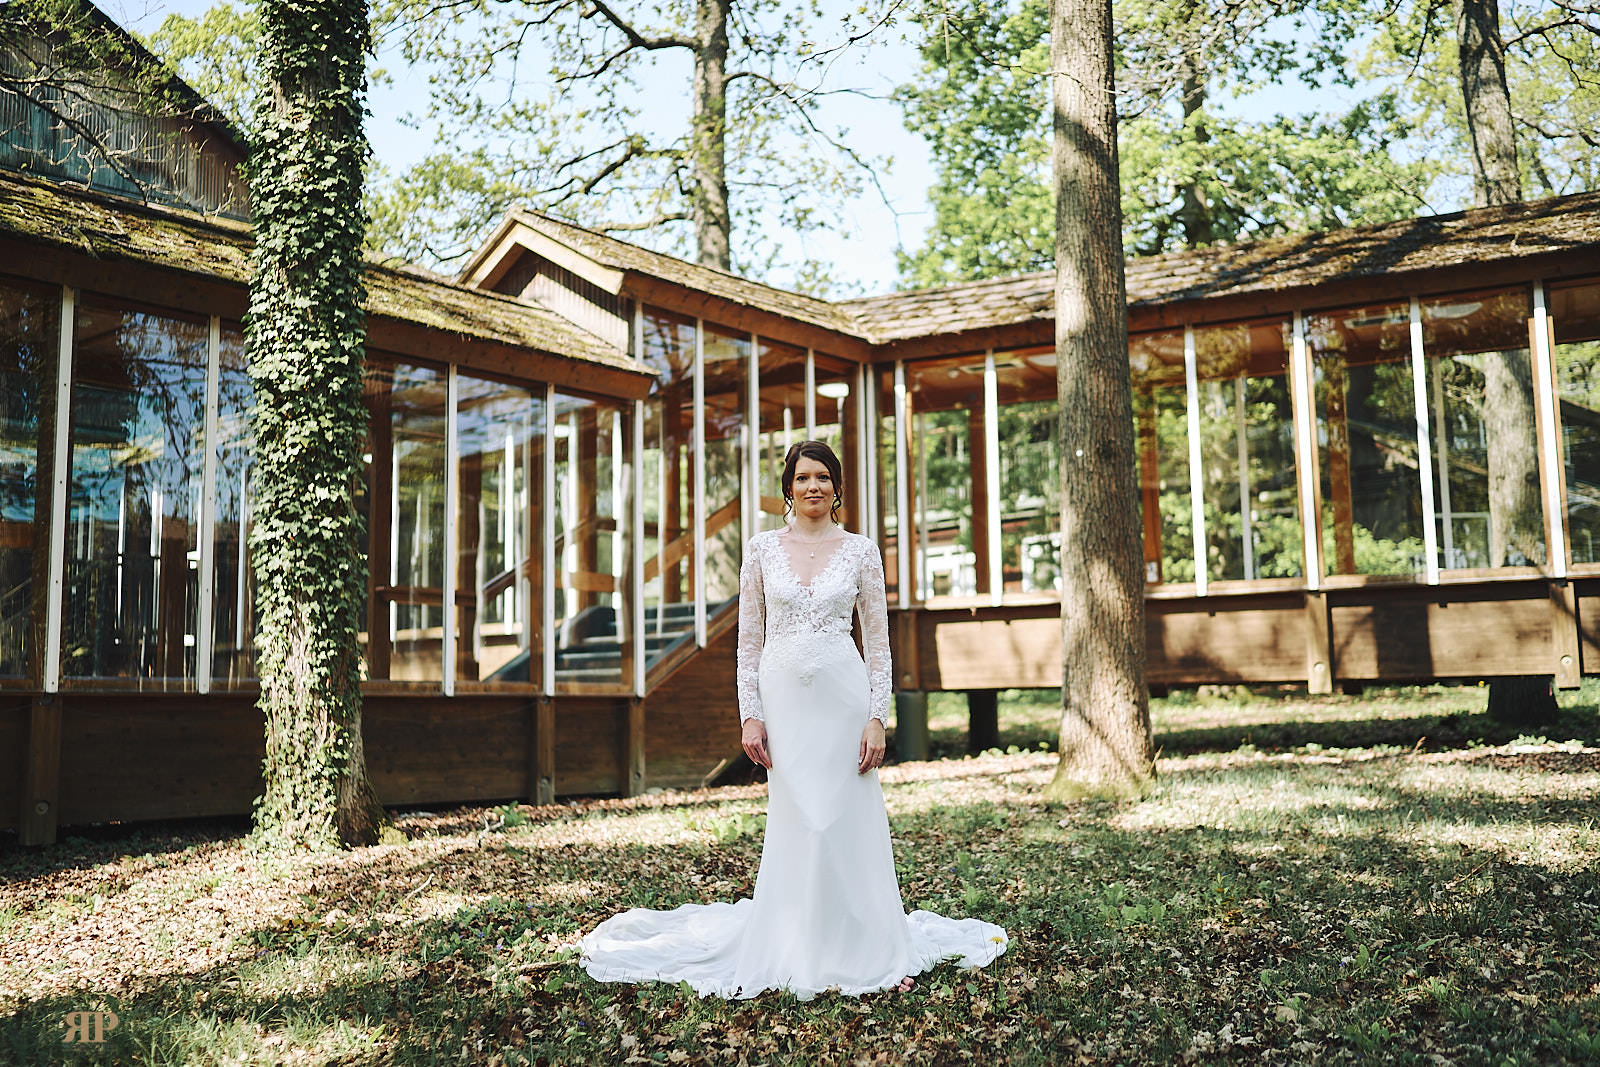 Claire Sam Wedding Marwell Hotel  at Marwell Hotel  Winchester on 20 April 2019.